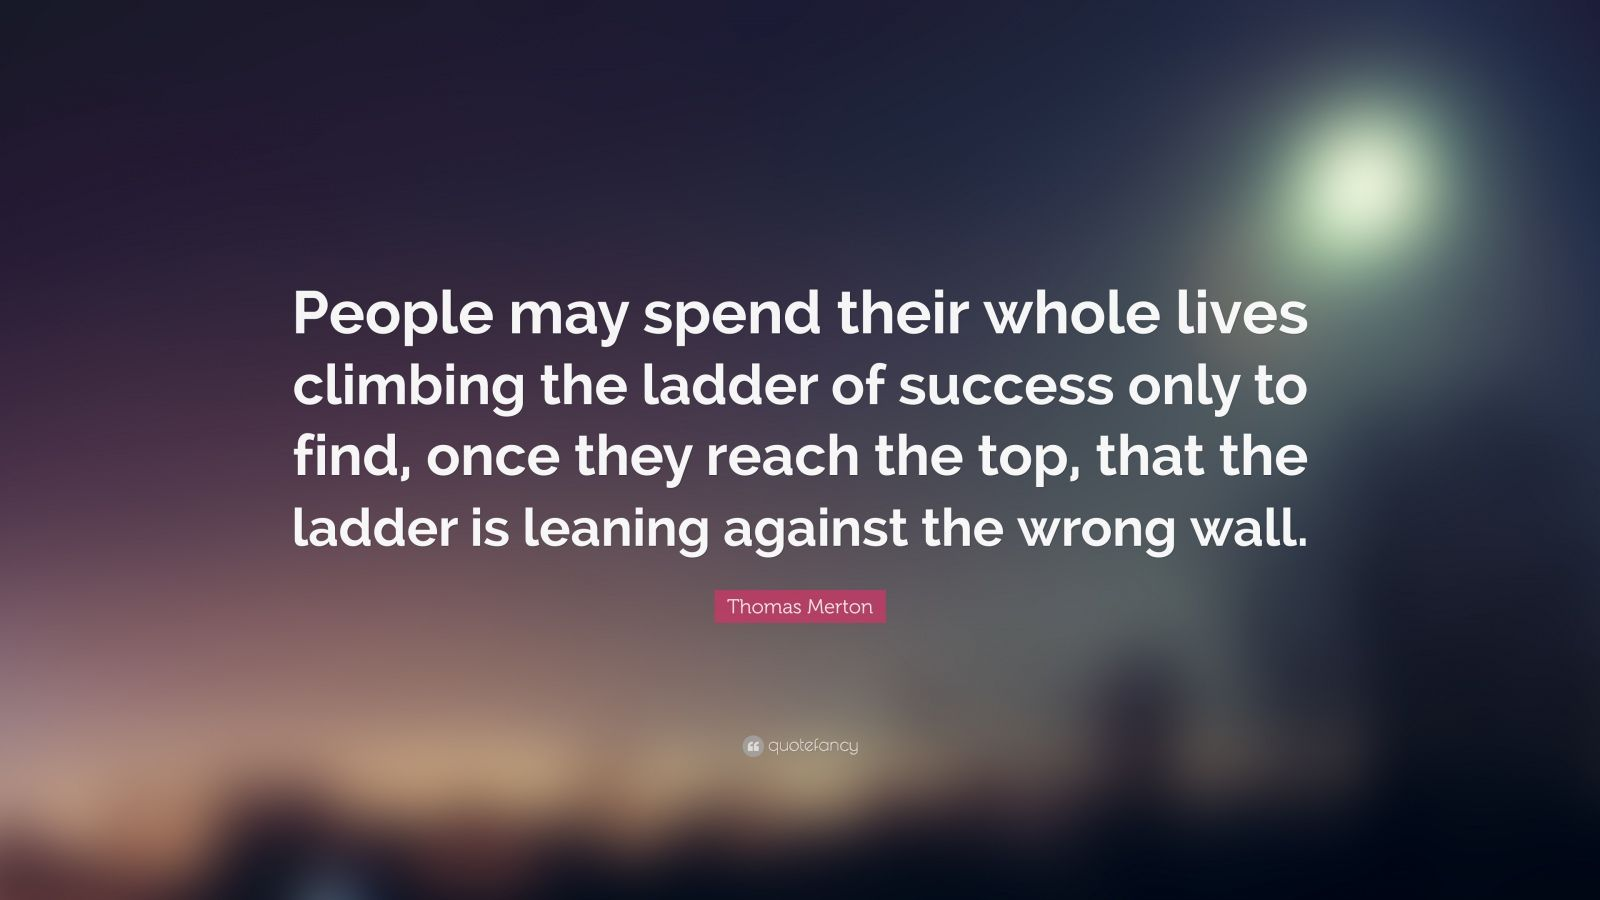 """Thomas Merton Quote: """"People may spend their whole lives climbing the ladder of success only to find, once they reach the top, that the ladder is leaning against the wrong wall."""""""